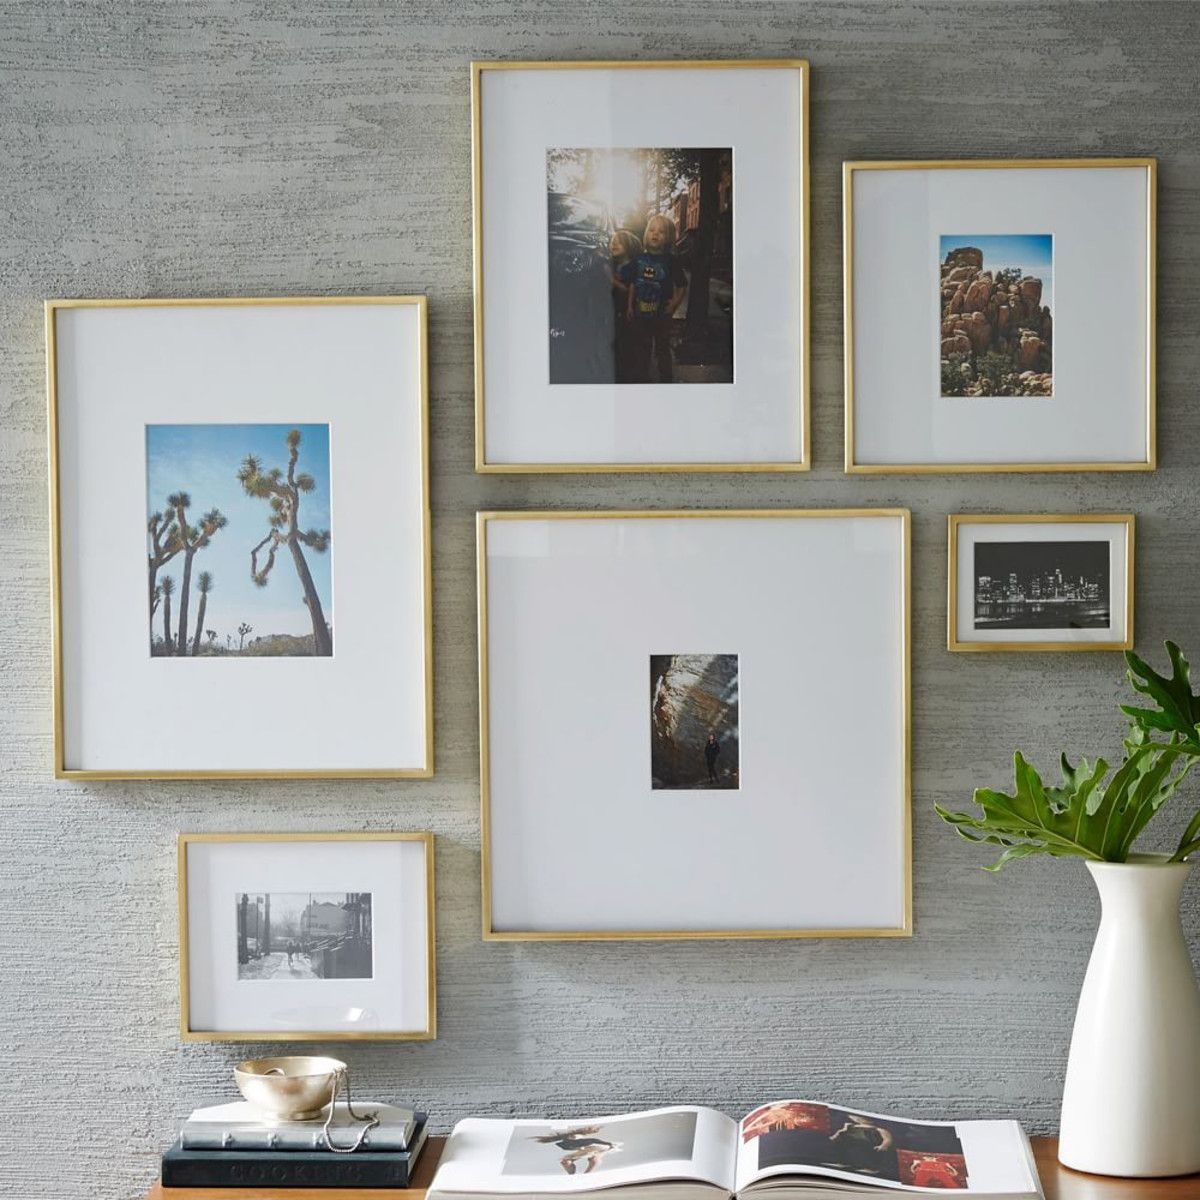 gallery-frames-polished-brass-w1683_1z | Beauty is in the home ...